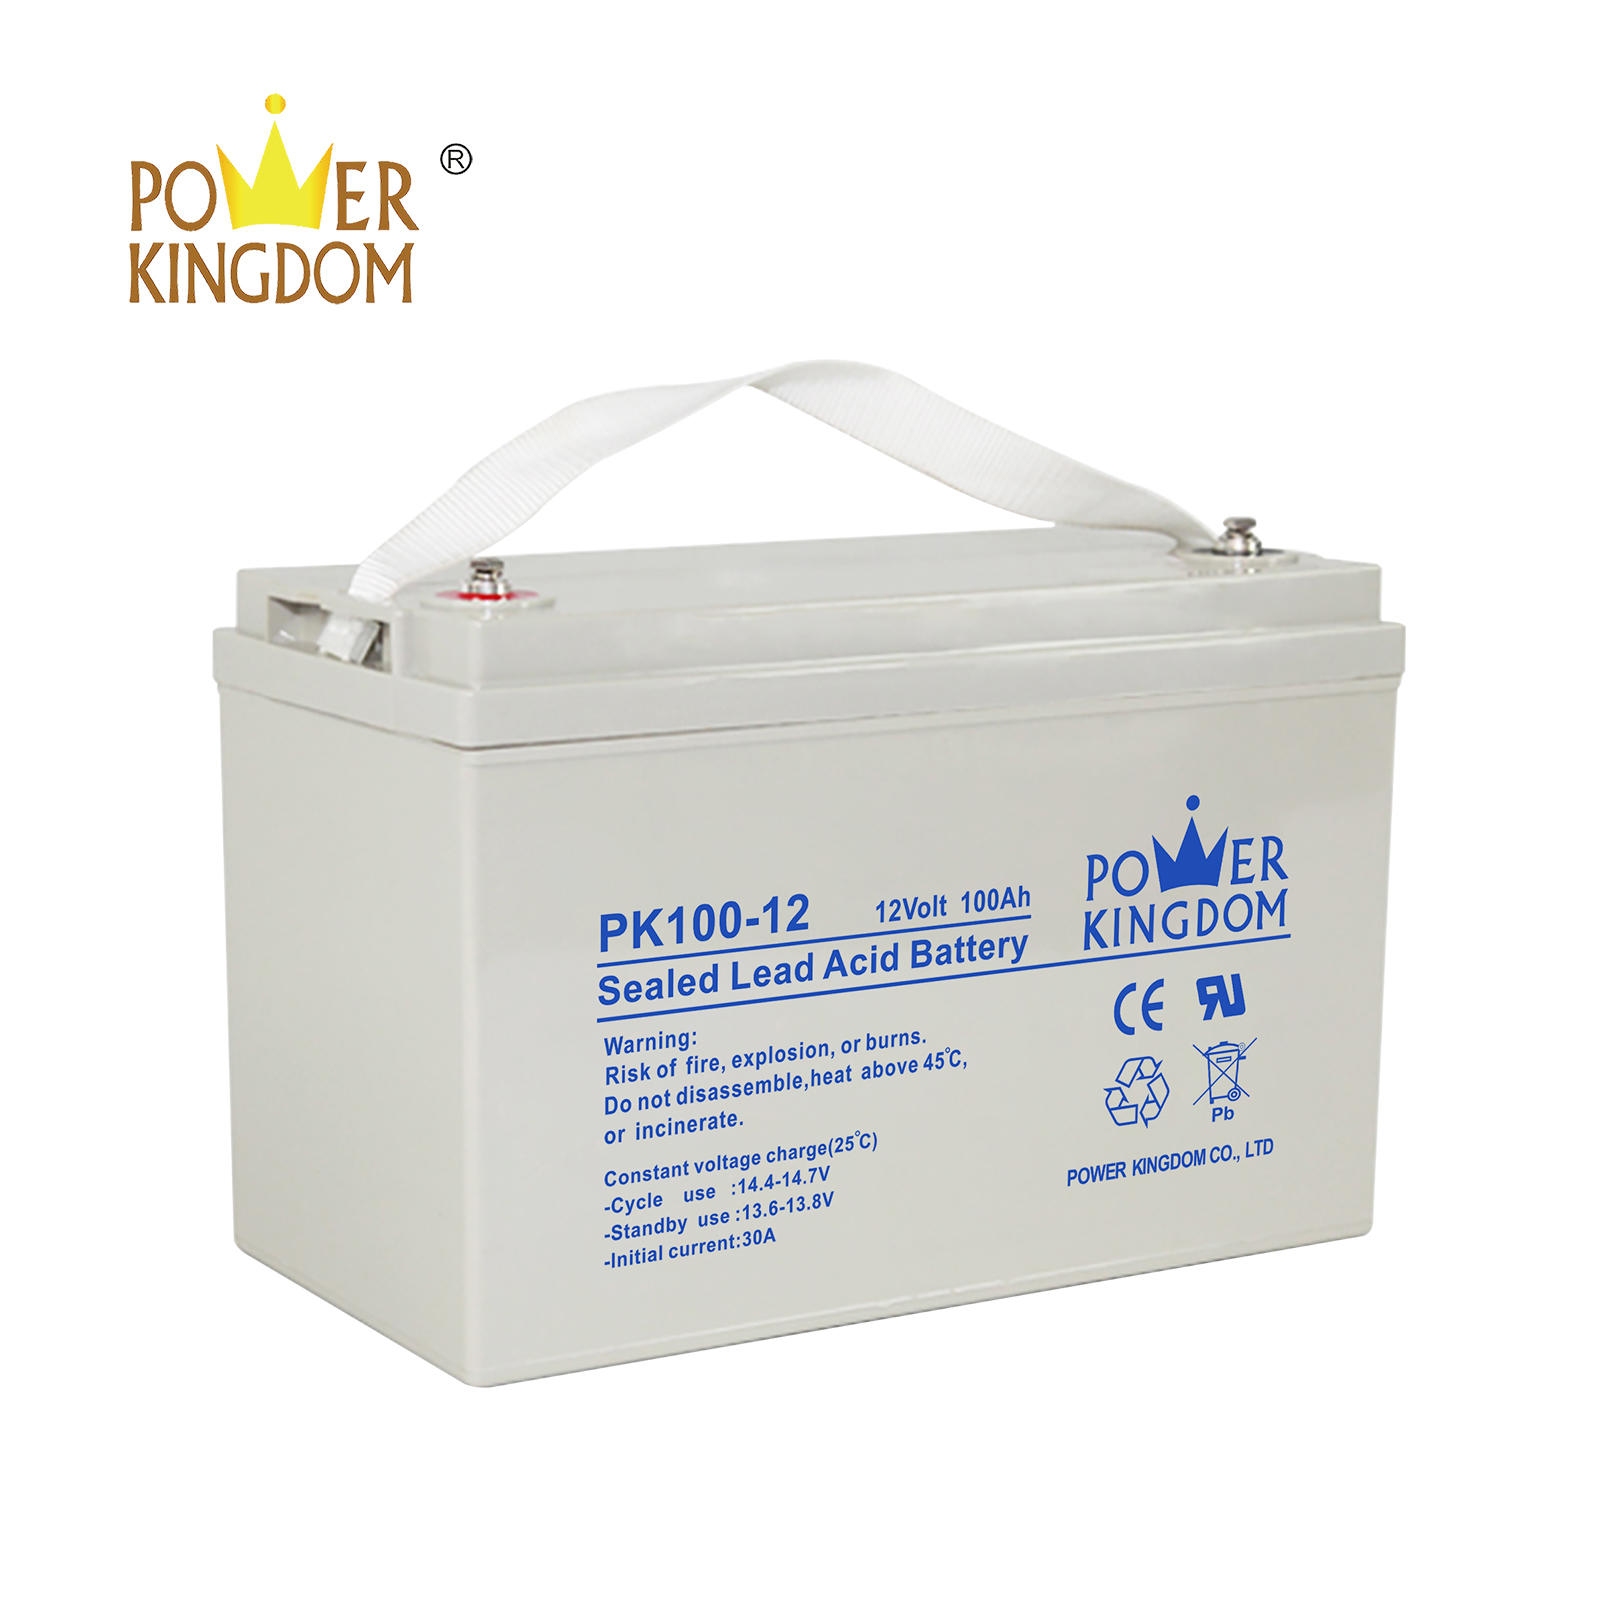 Industry leading 12v 100ah UPS lead acid deep cycle battery